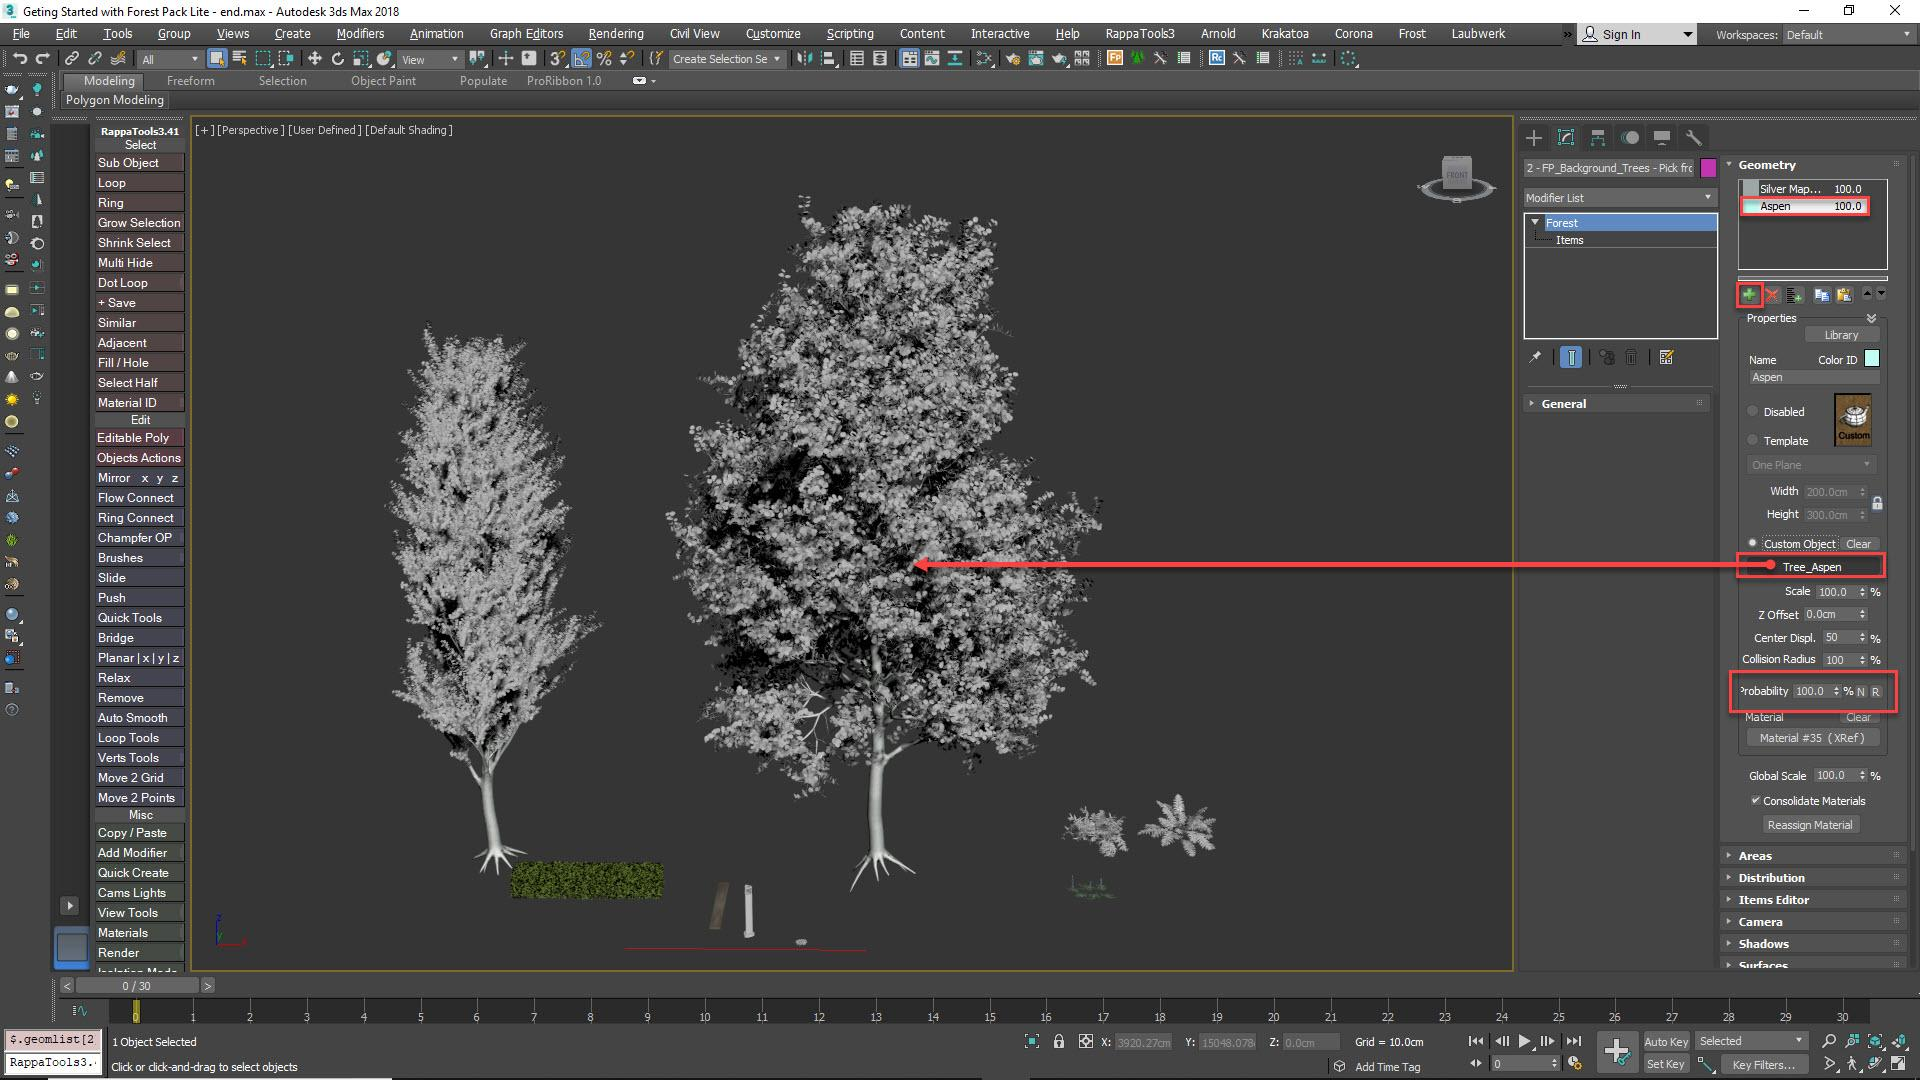 Adding trees manually